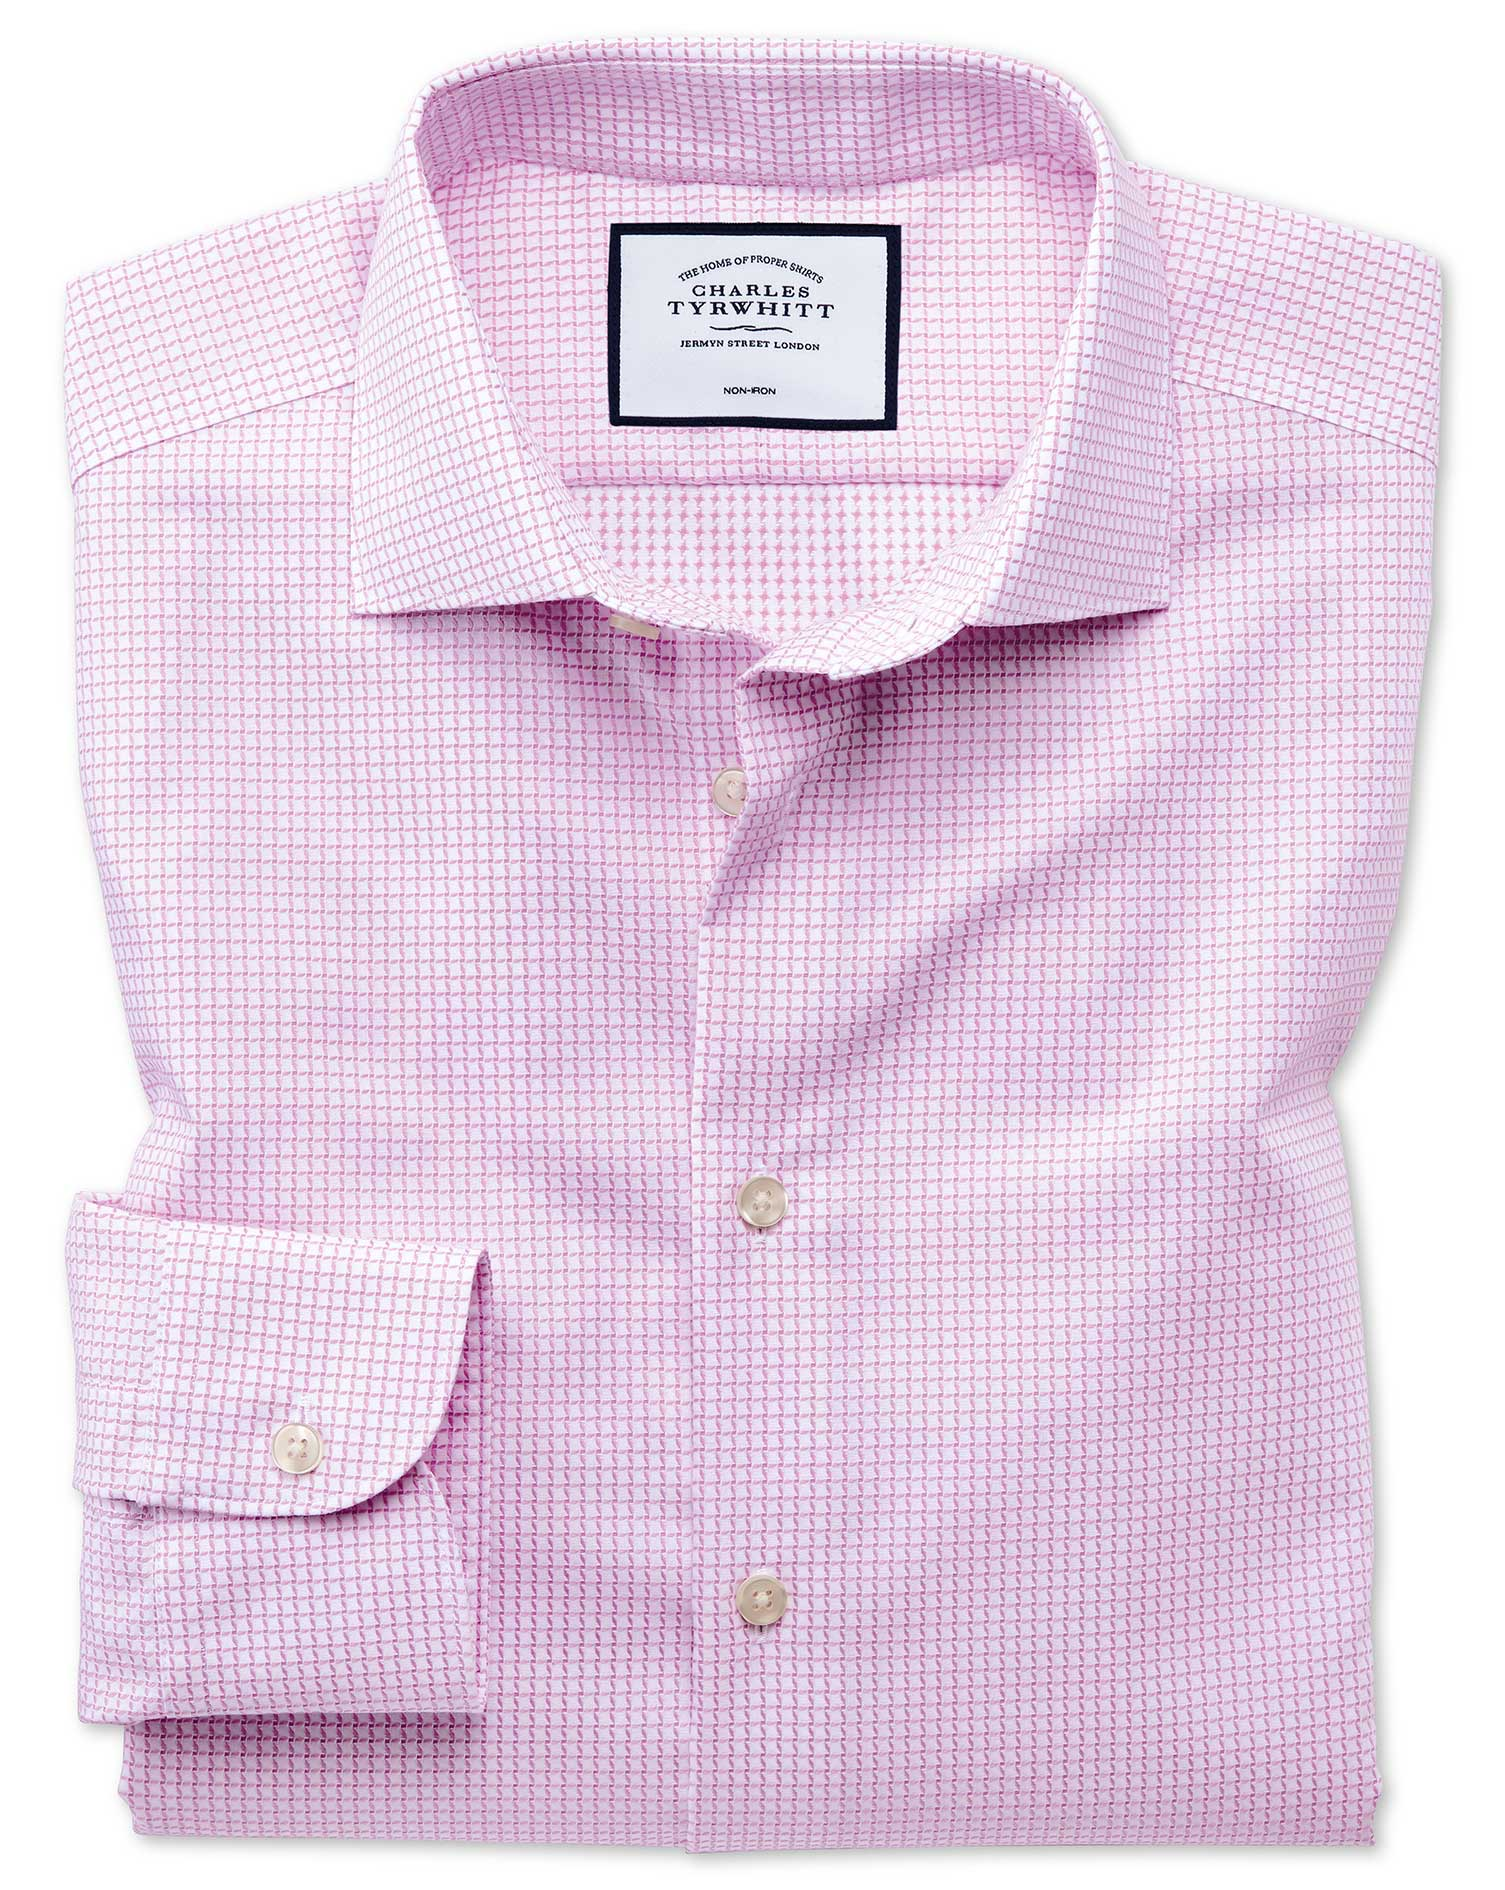 Slim Fit Business Casual Non-Iron Modern Textures Pink Cotton Formal Shirt Single Cuff Size 16/35 by